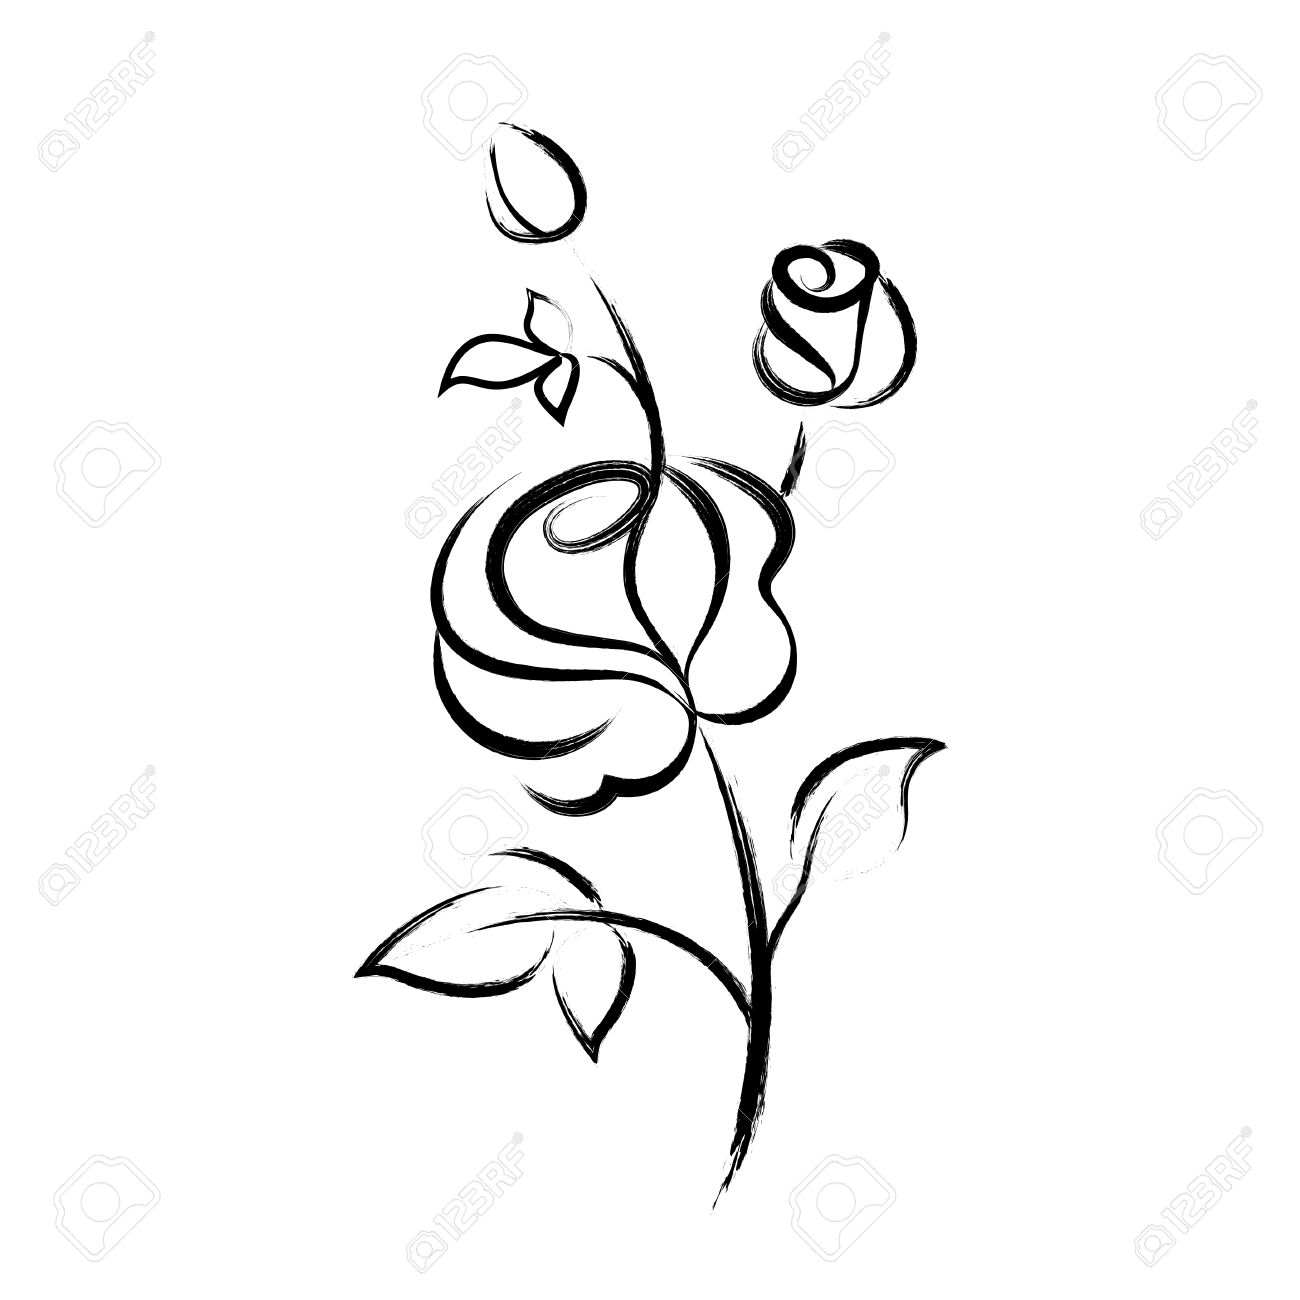 Black Hand Drawn Rose Isolated On White Background Royalty Free ...